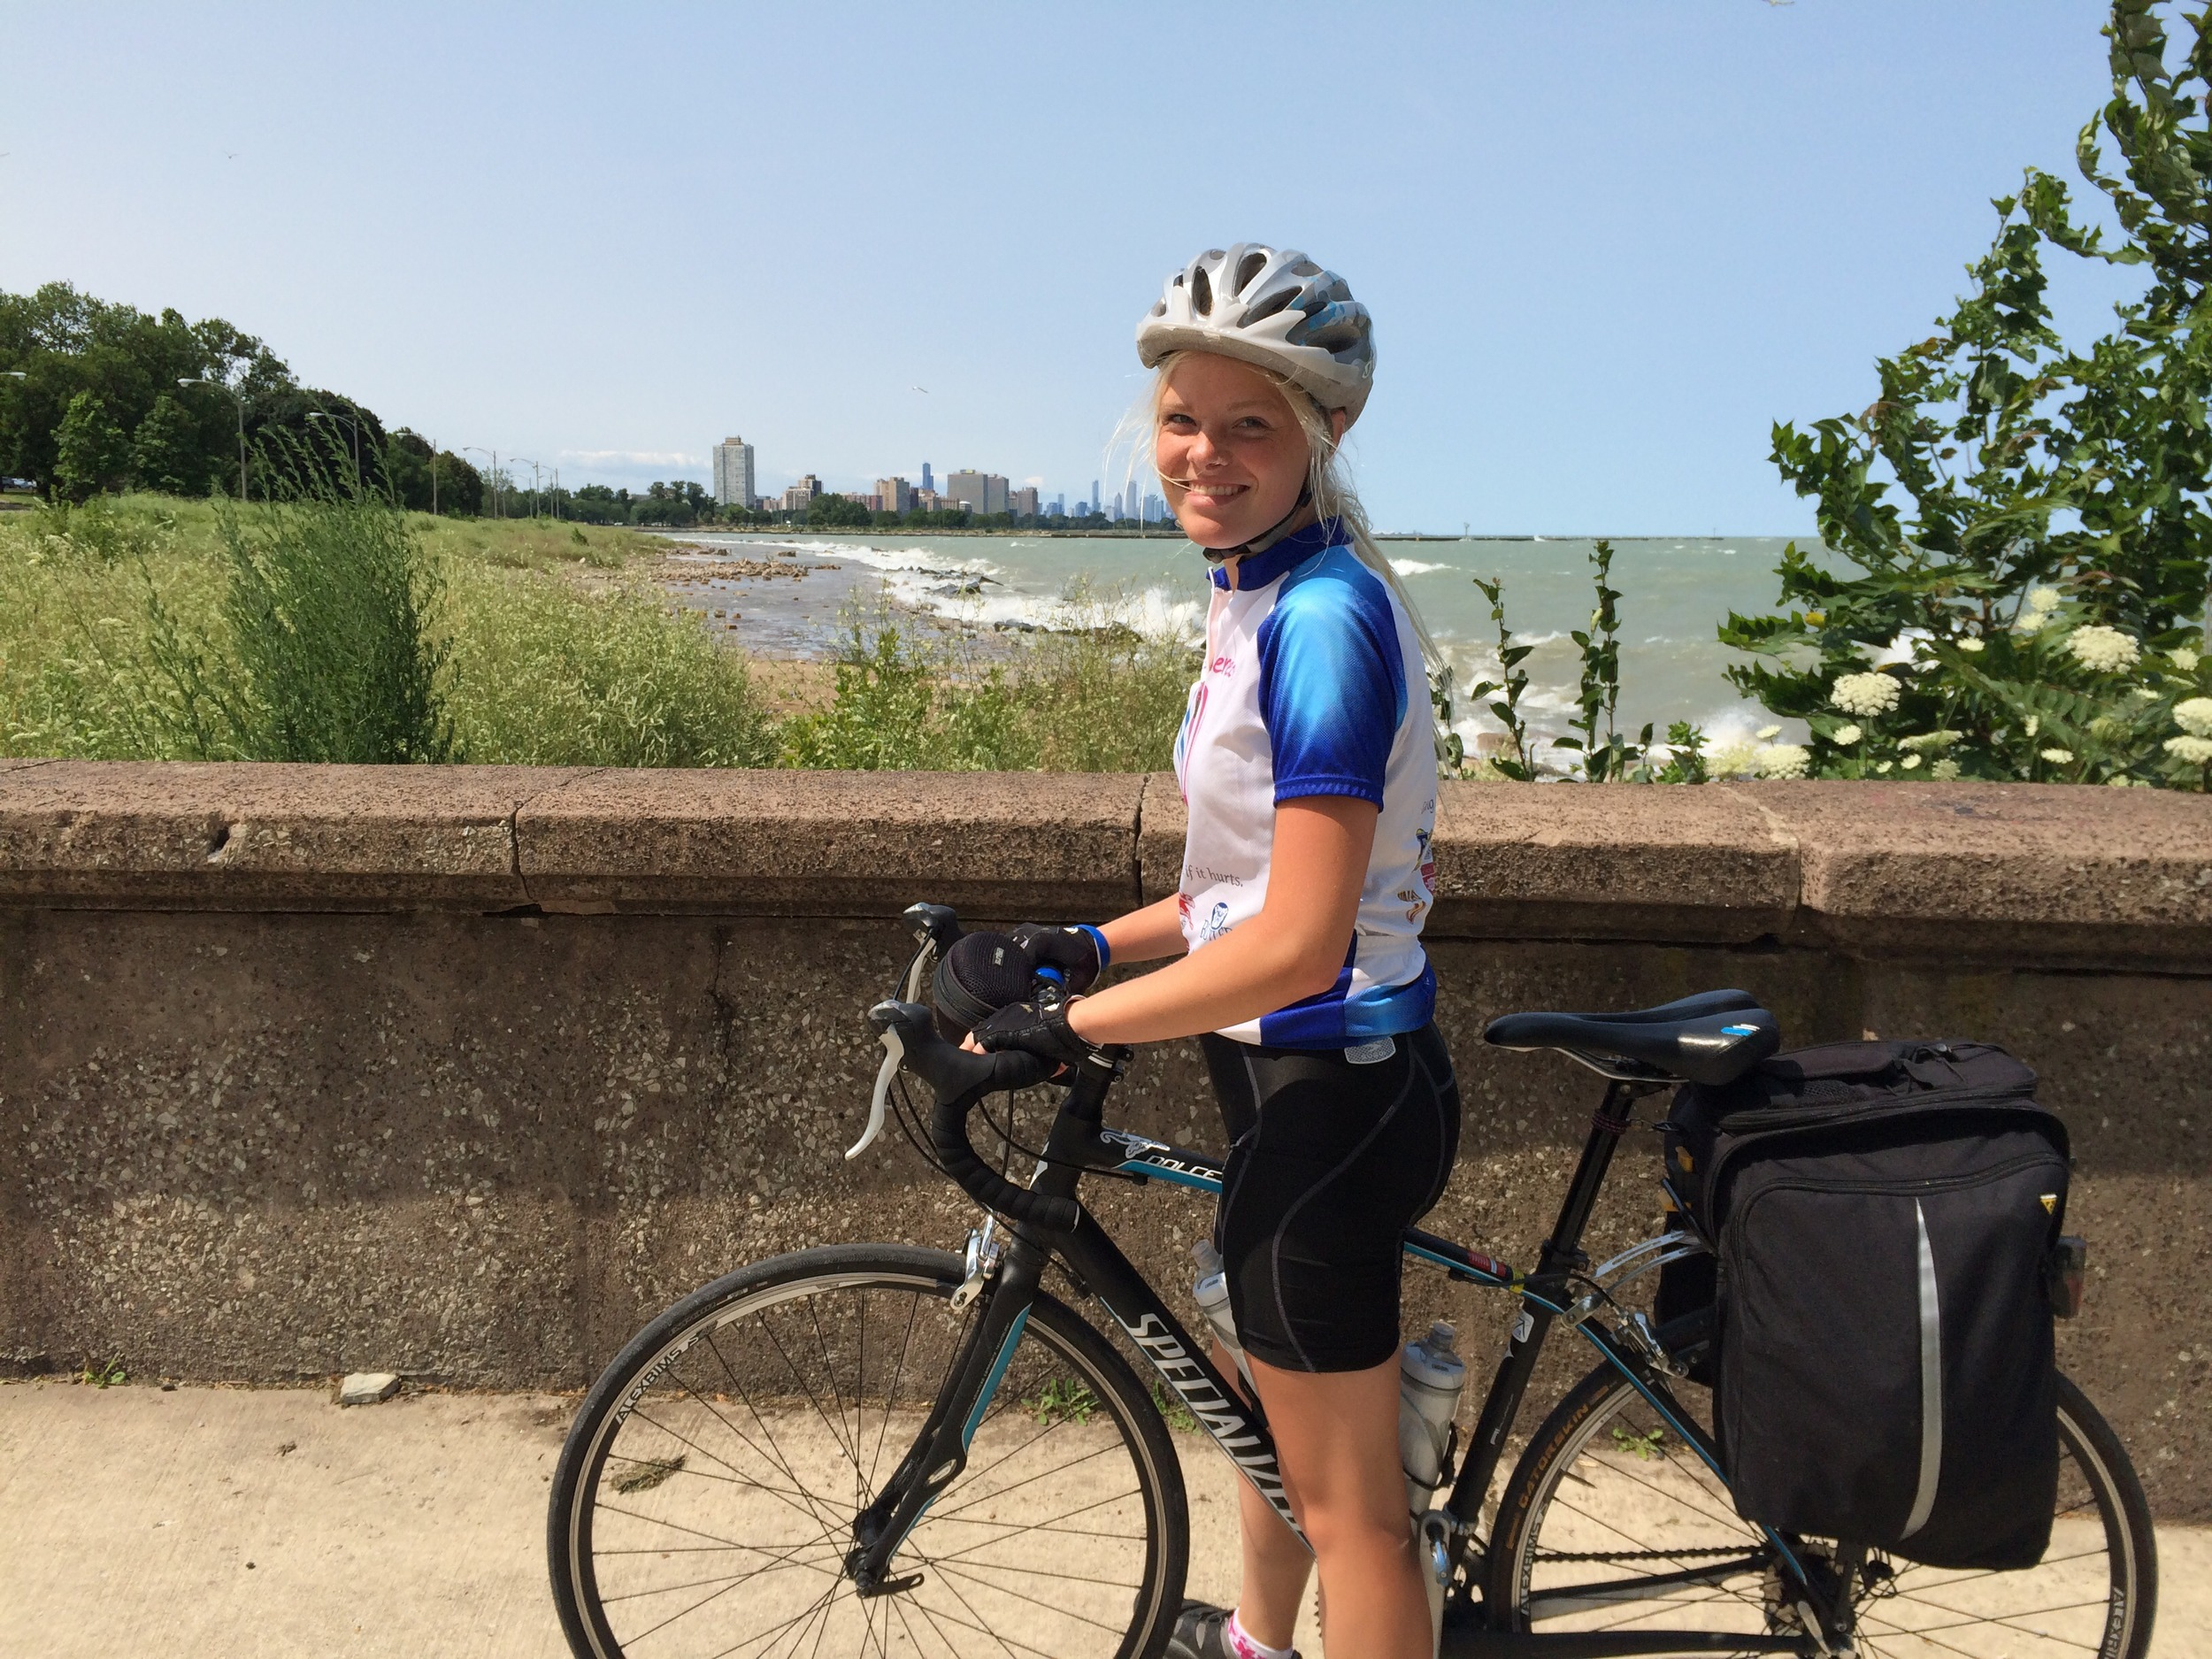 The Chicago skyline in the background as we followed the Lake Shore Trail